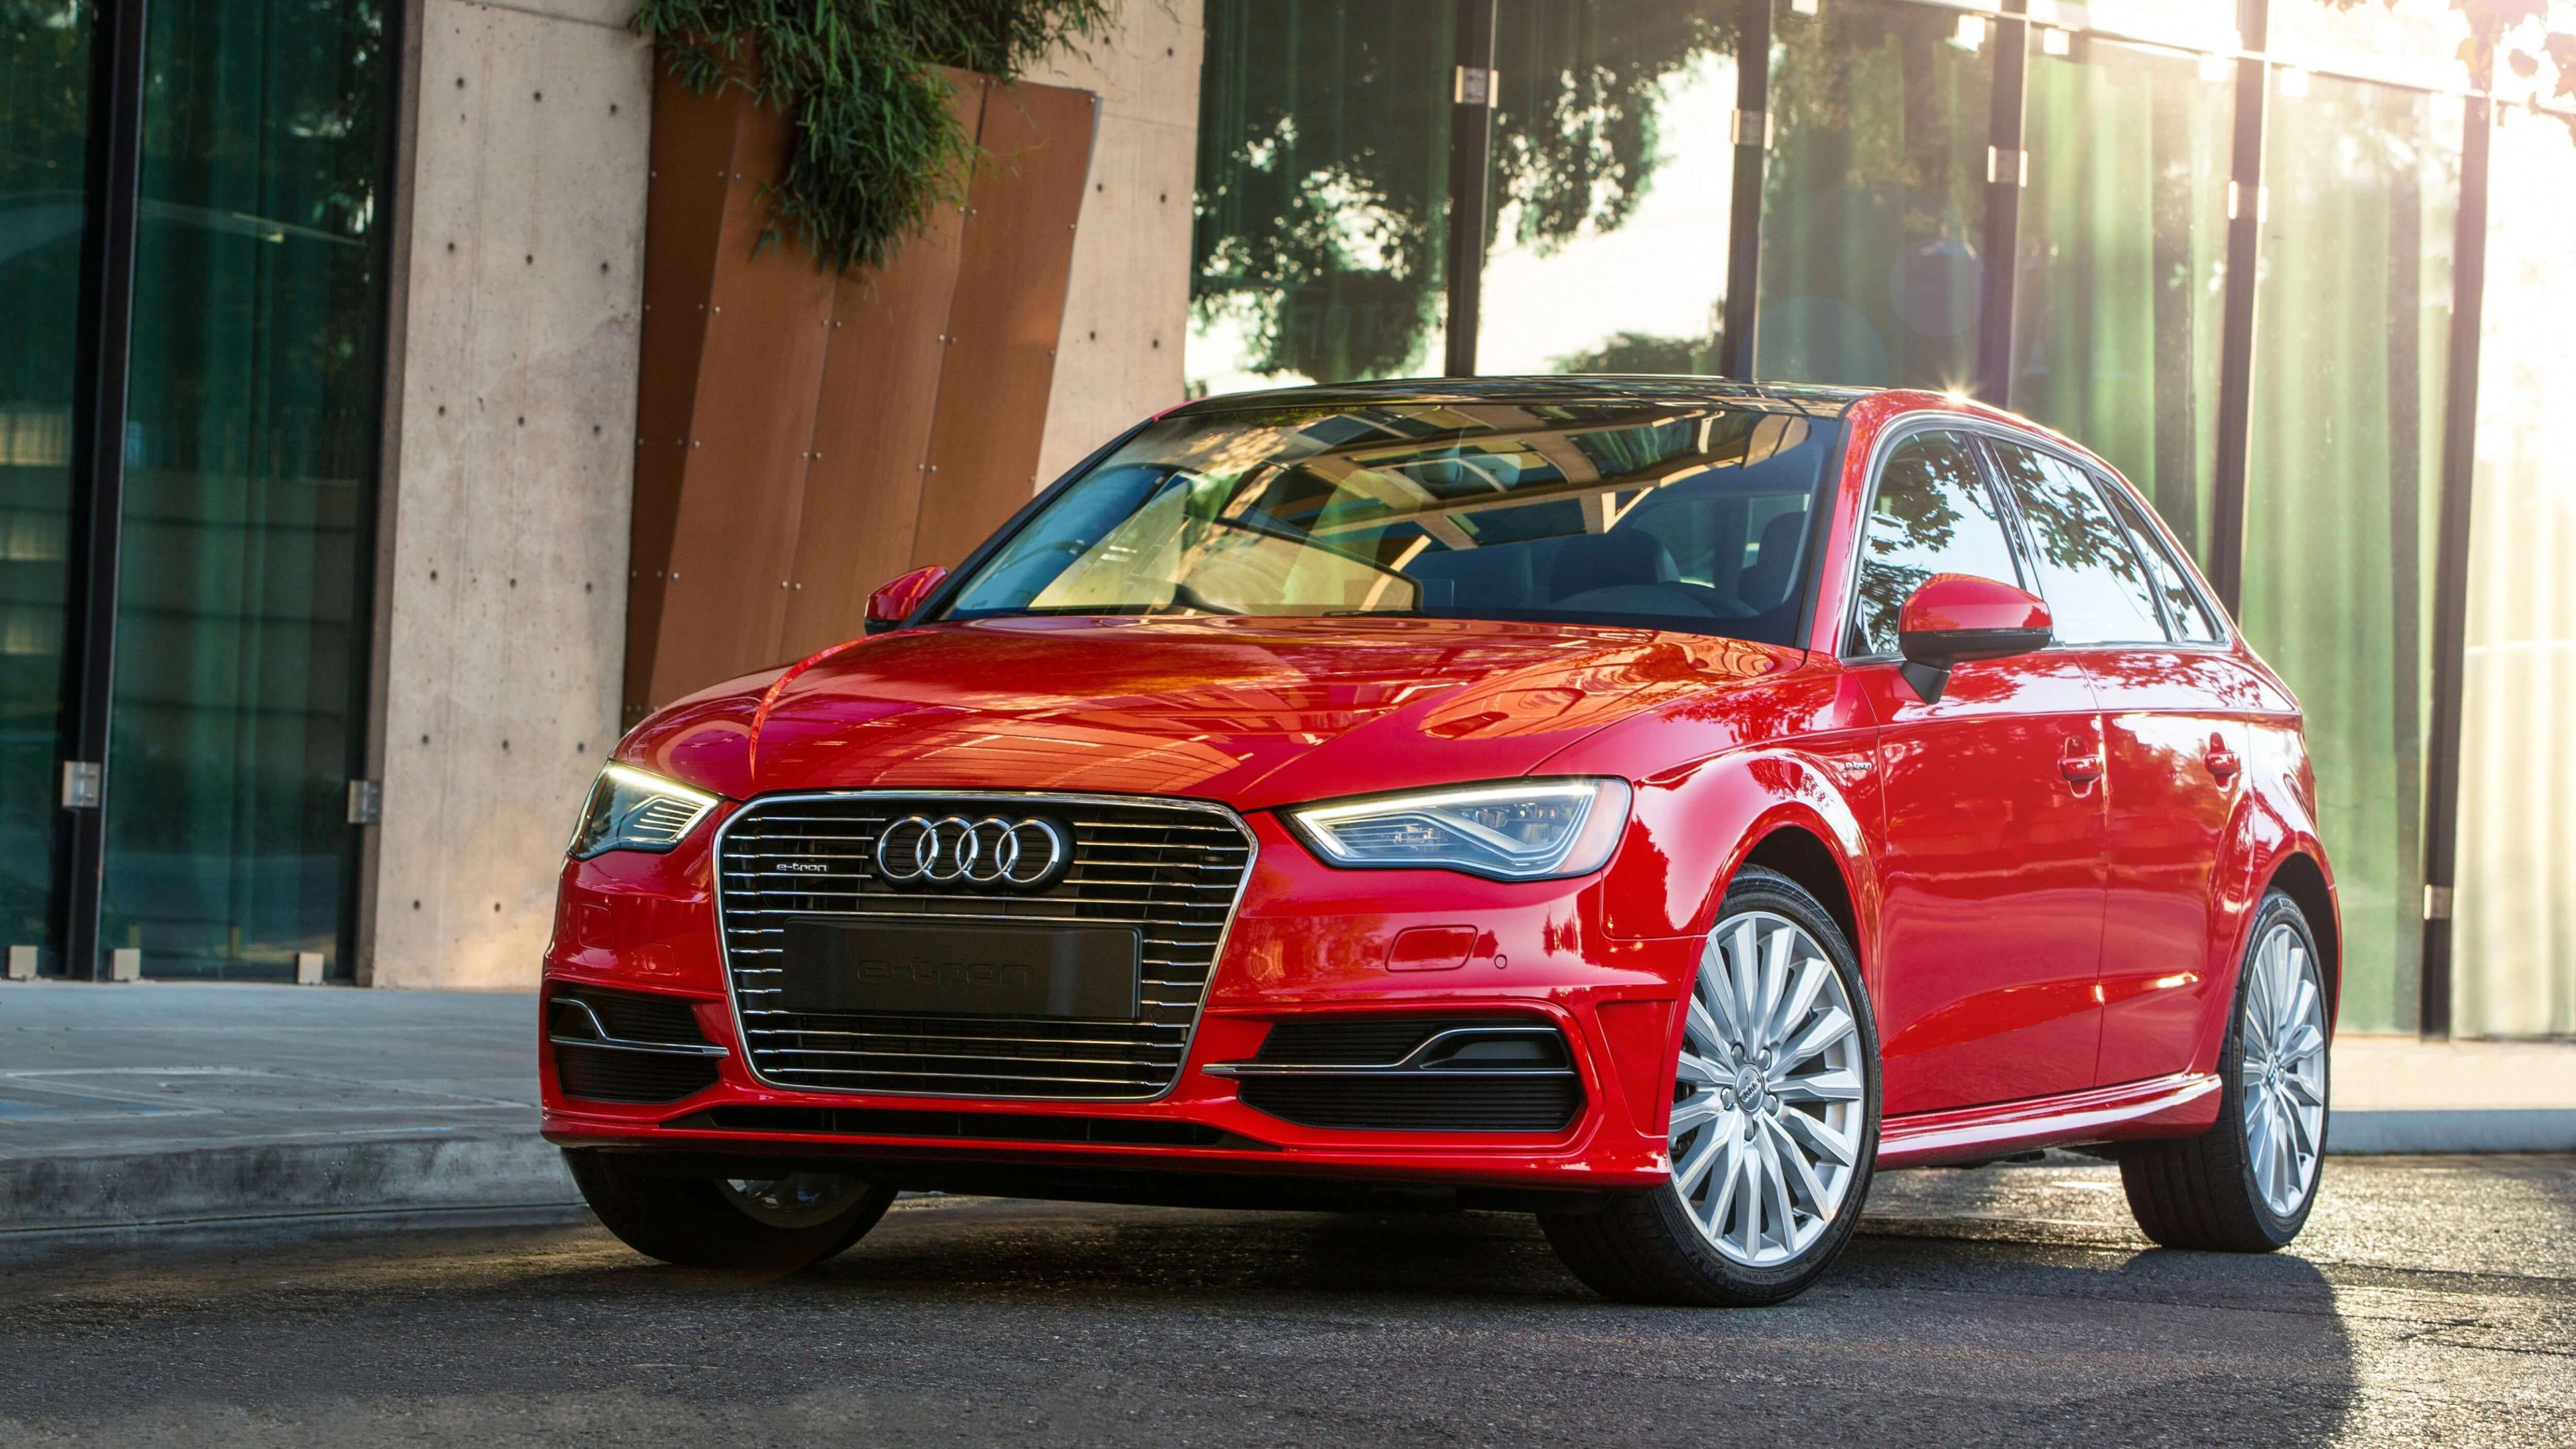 Learn about the 2017 Audi A3 Sportback etron's key